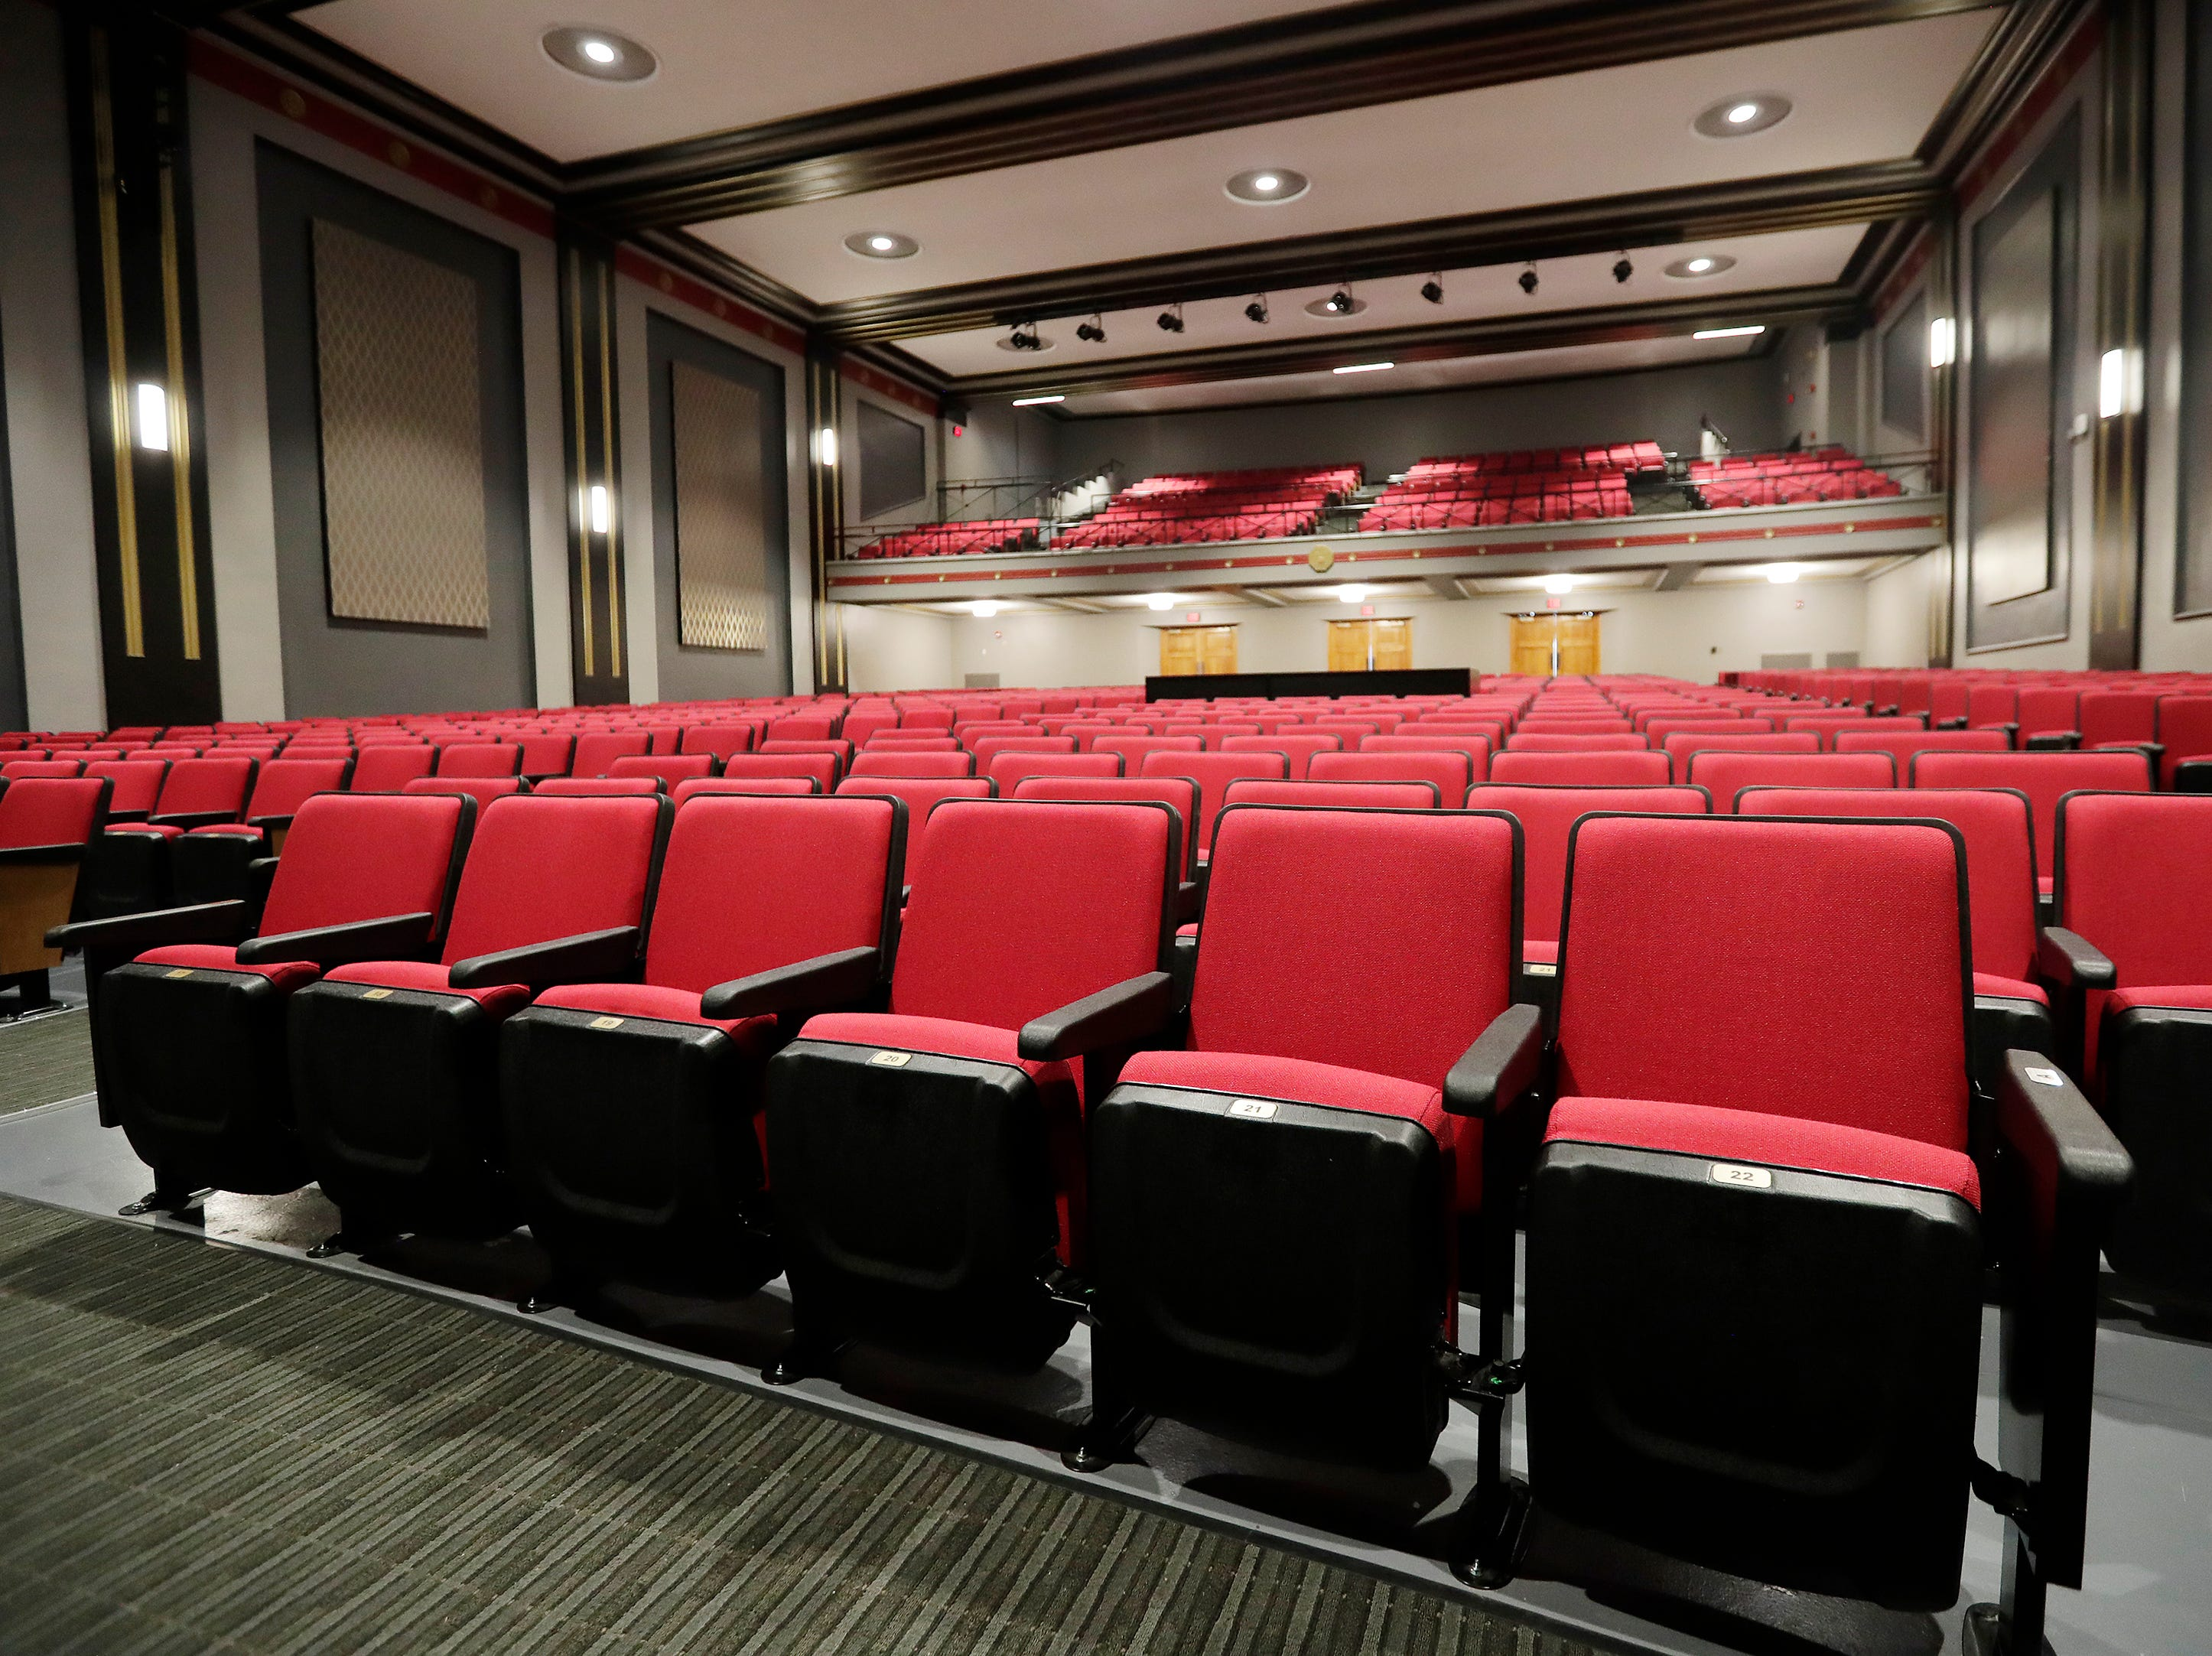 The new seating in the remodeled auditorium at Washington Middle School is shown on Wednesday, February 13, 2019 in Green Bay, Wis.